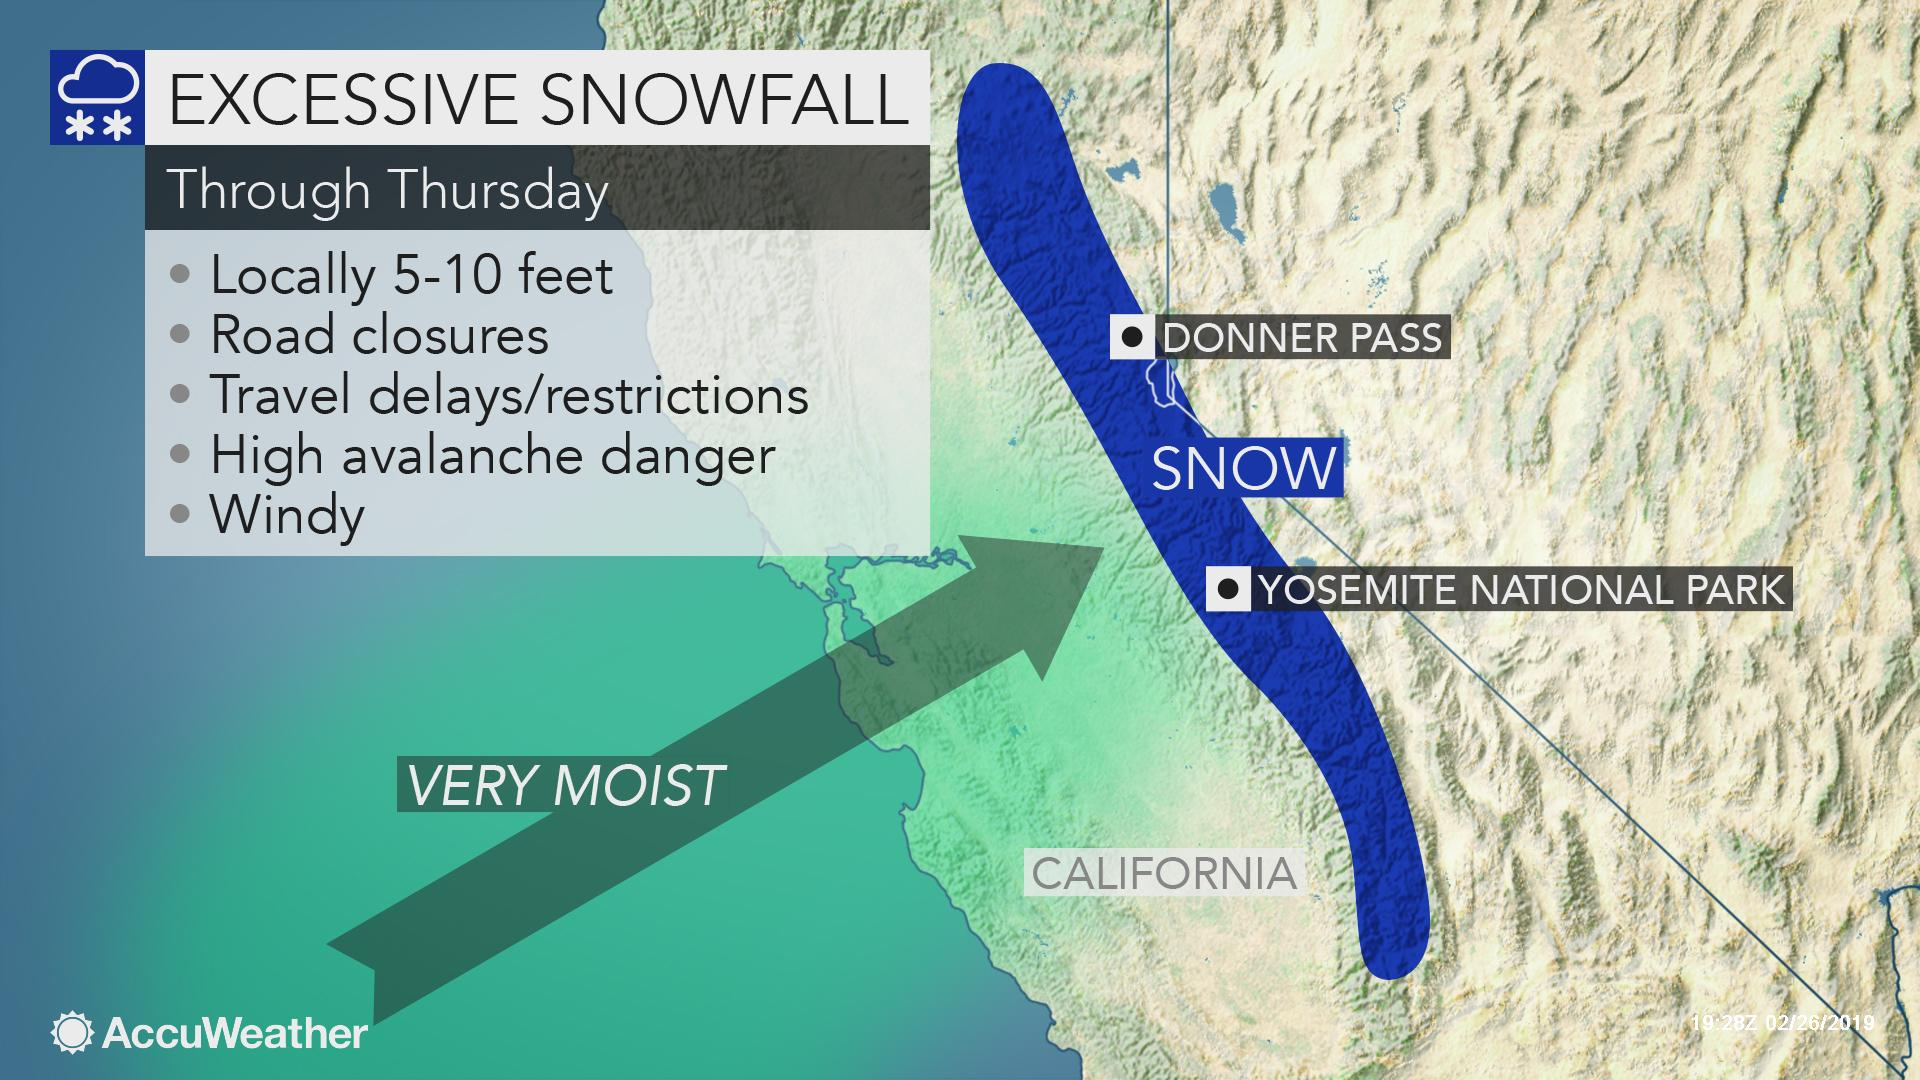 snow in california map Atmospheric River To Continue Drenching Rain Mountain Snow Over